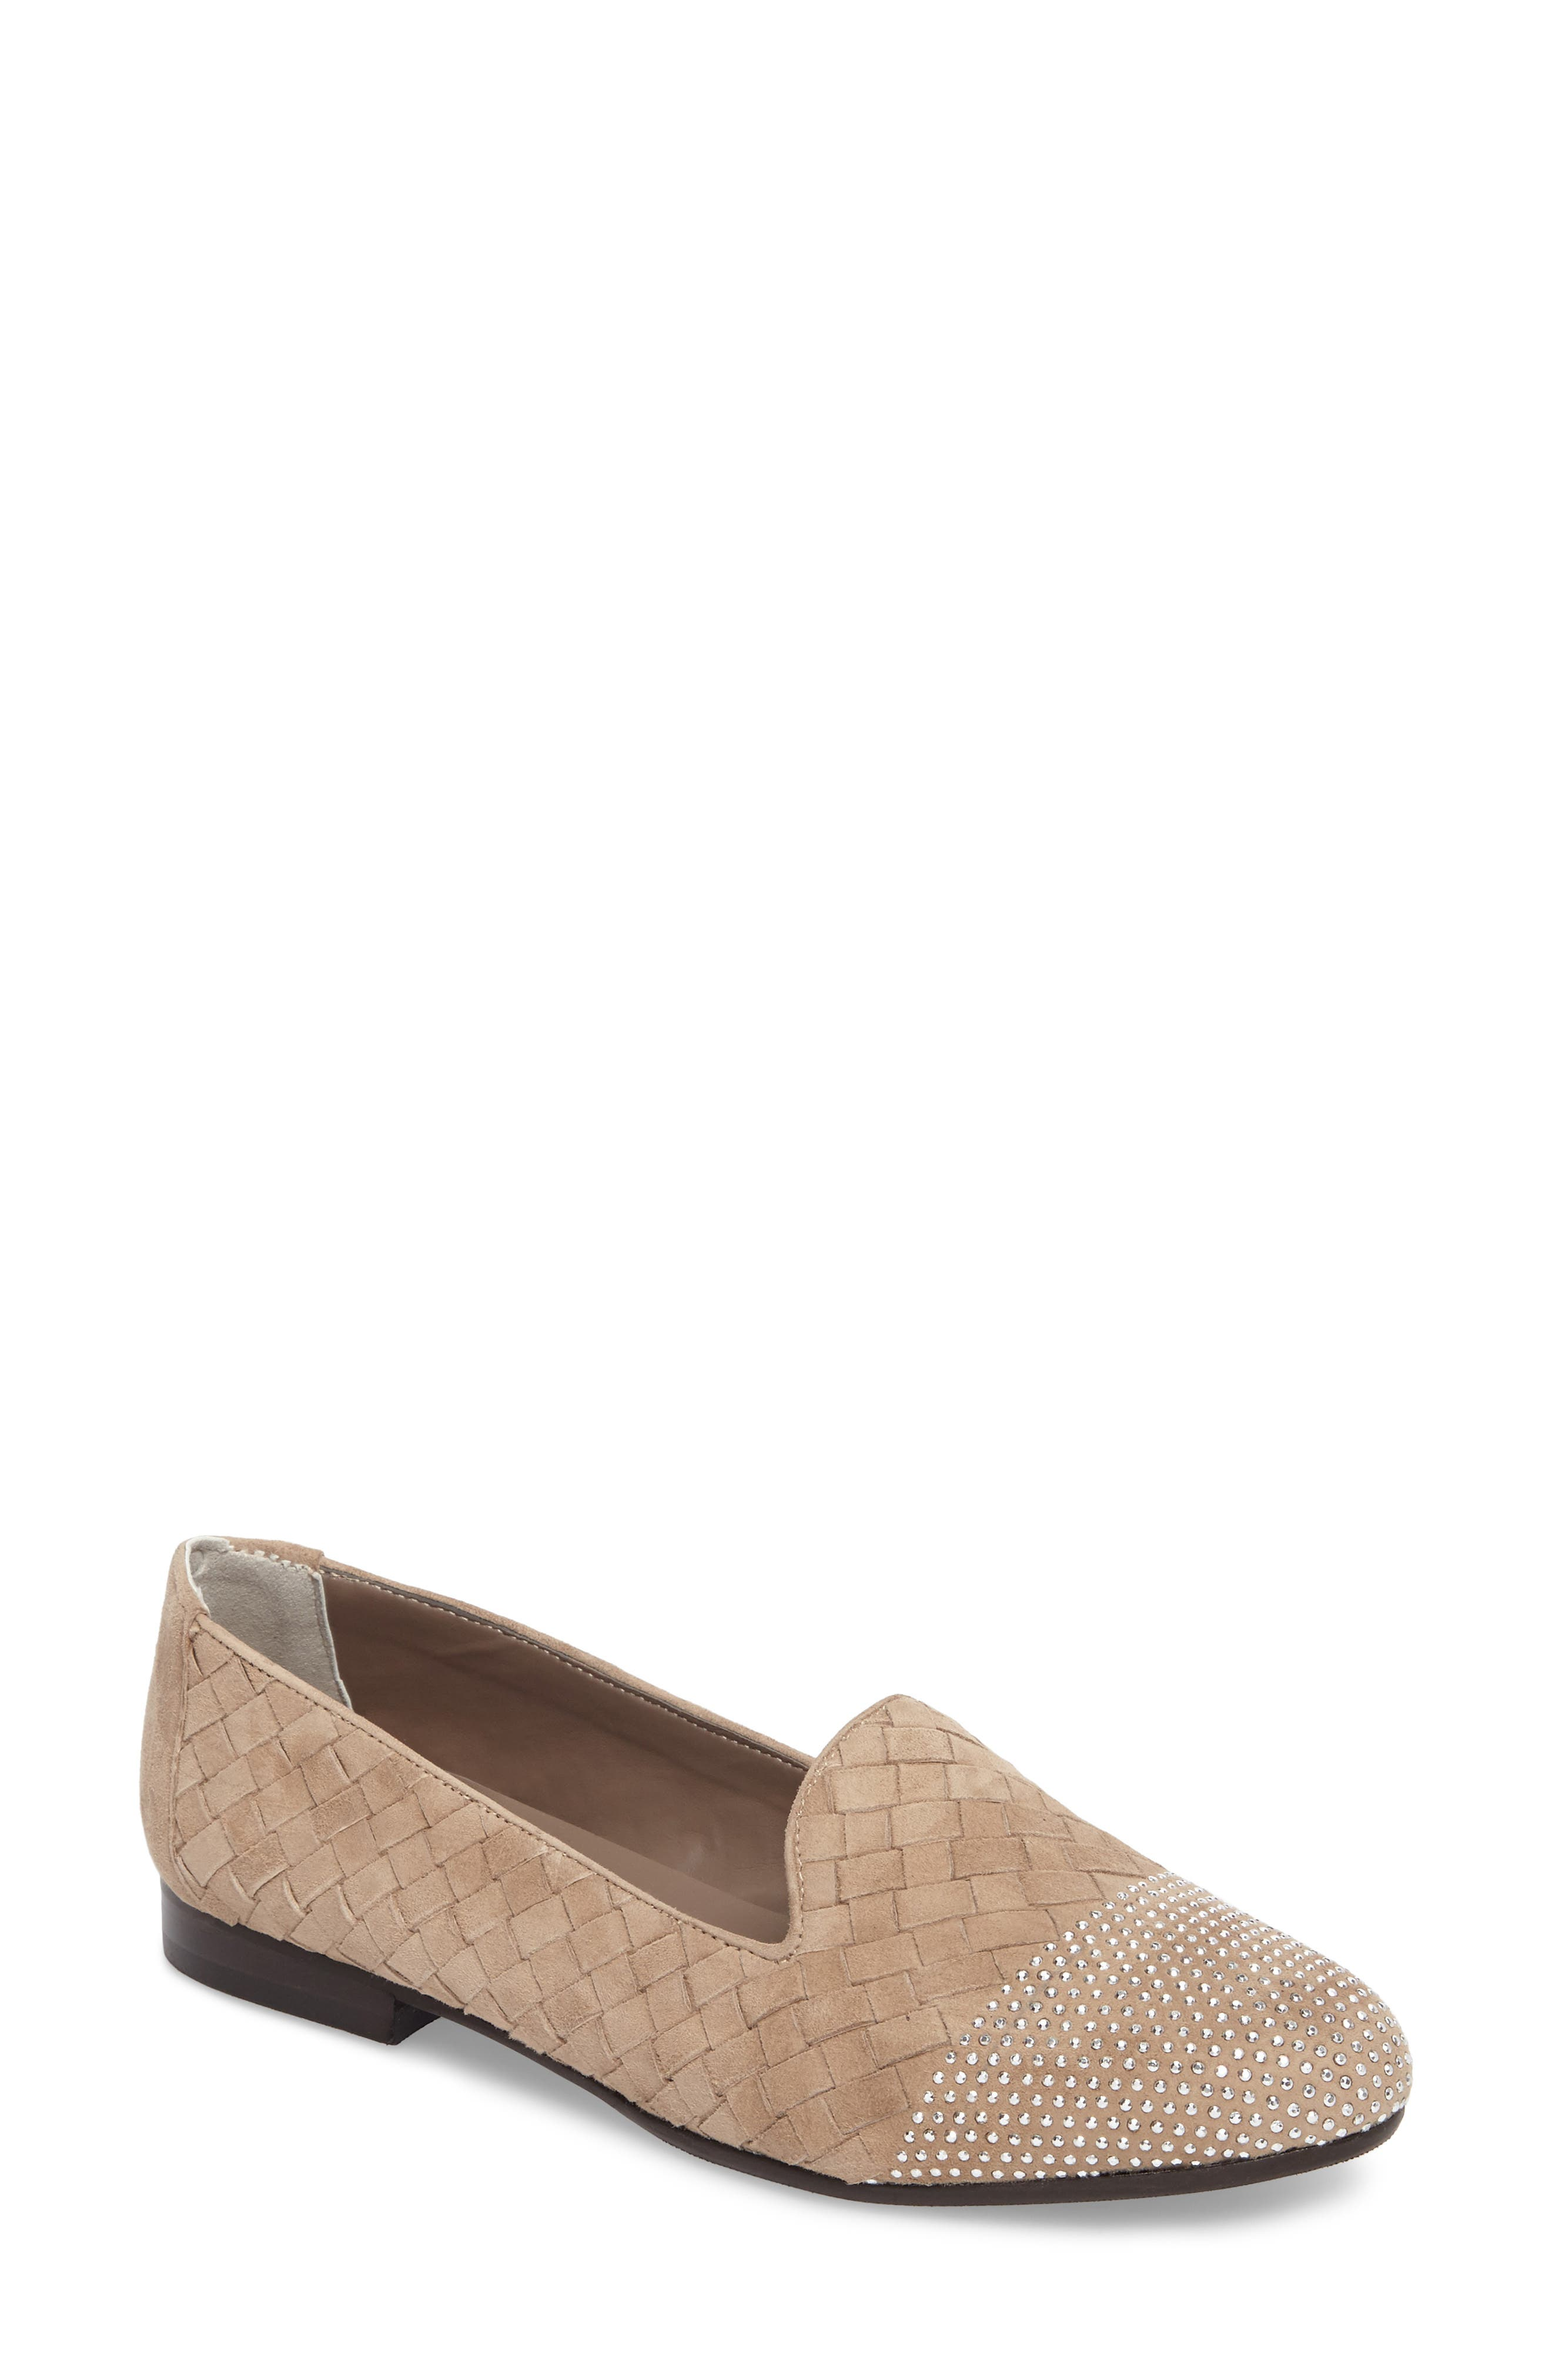 Nicia Flat,                         Main,                         color, Light Taupe Suede